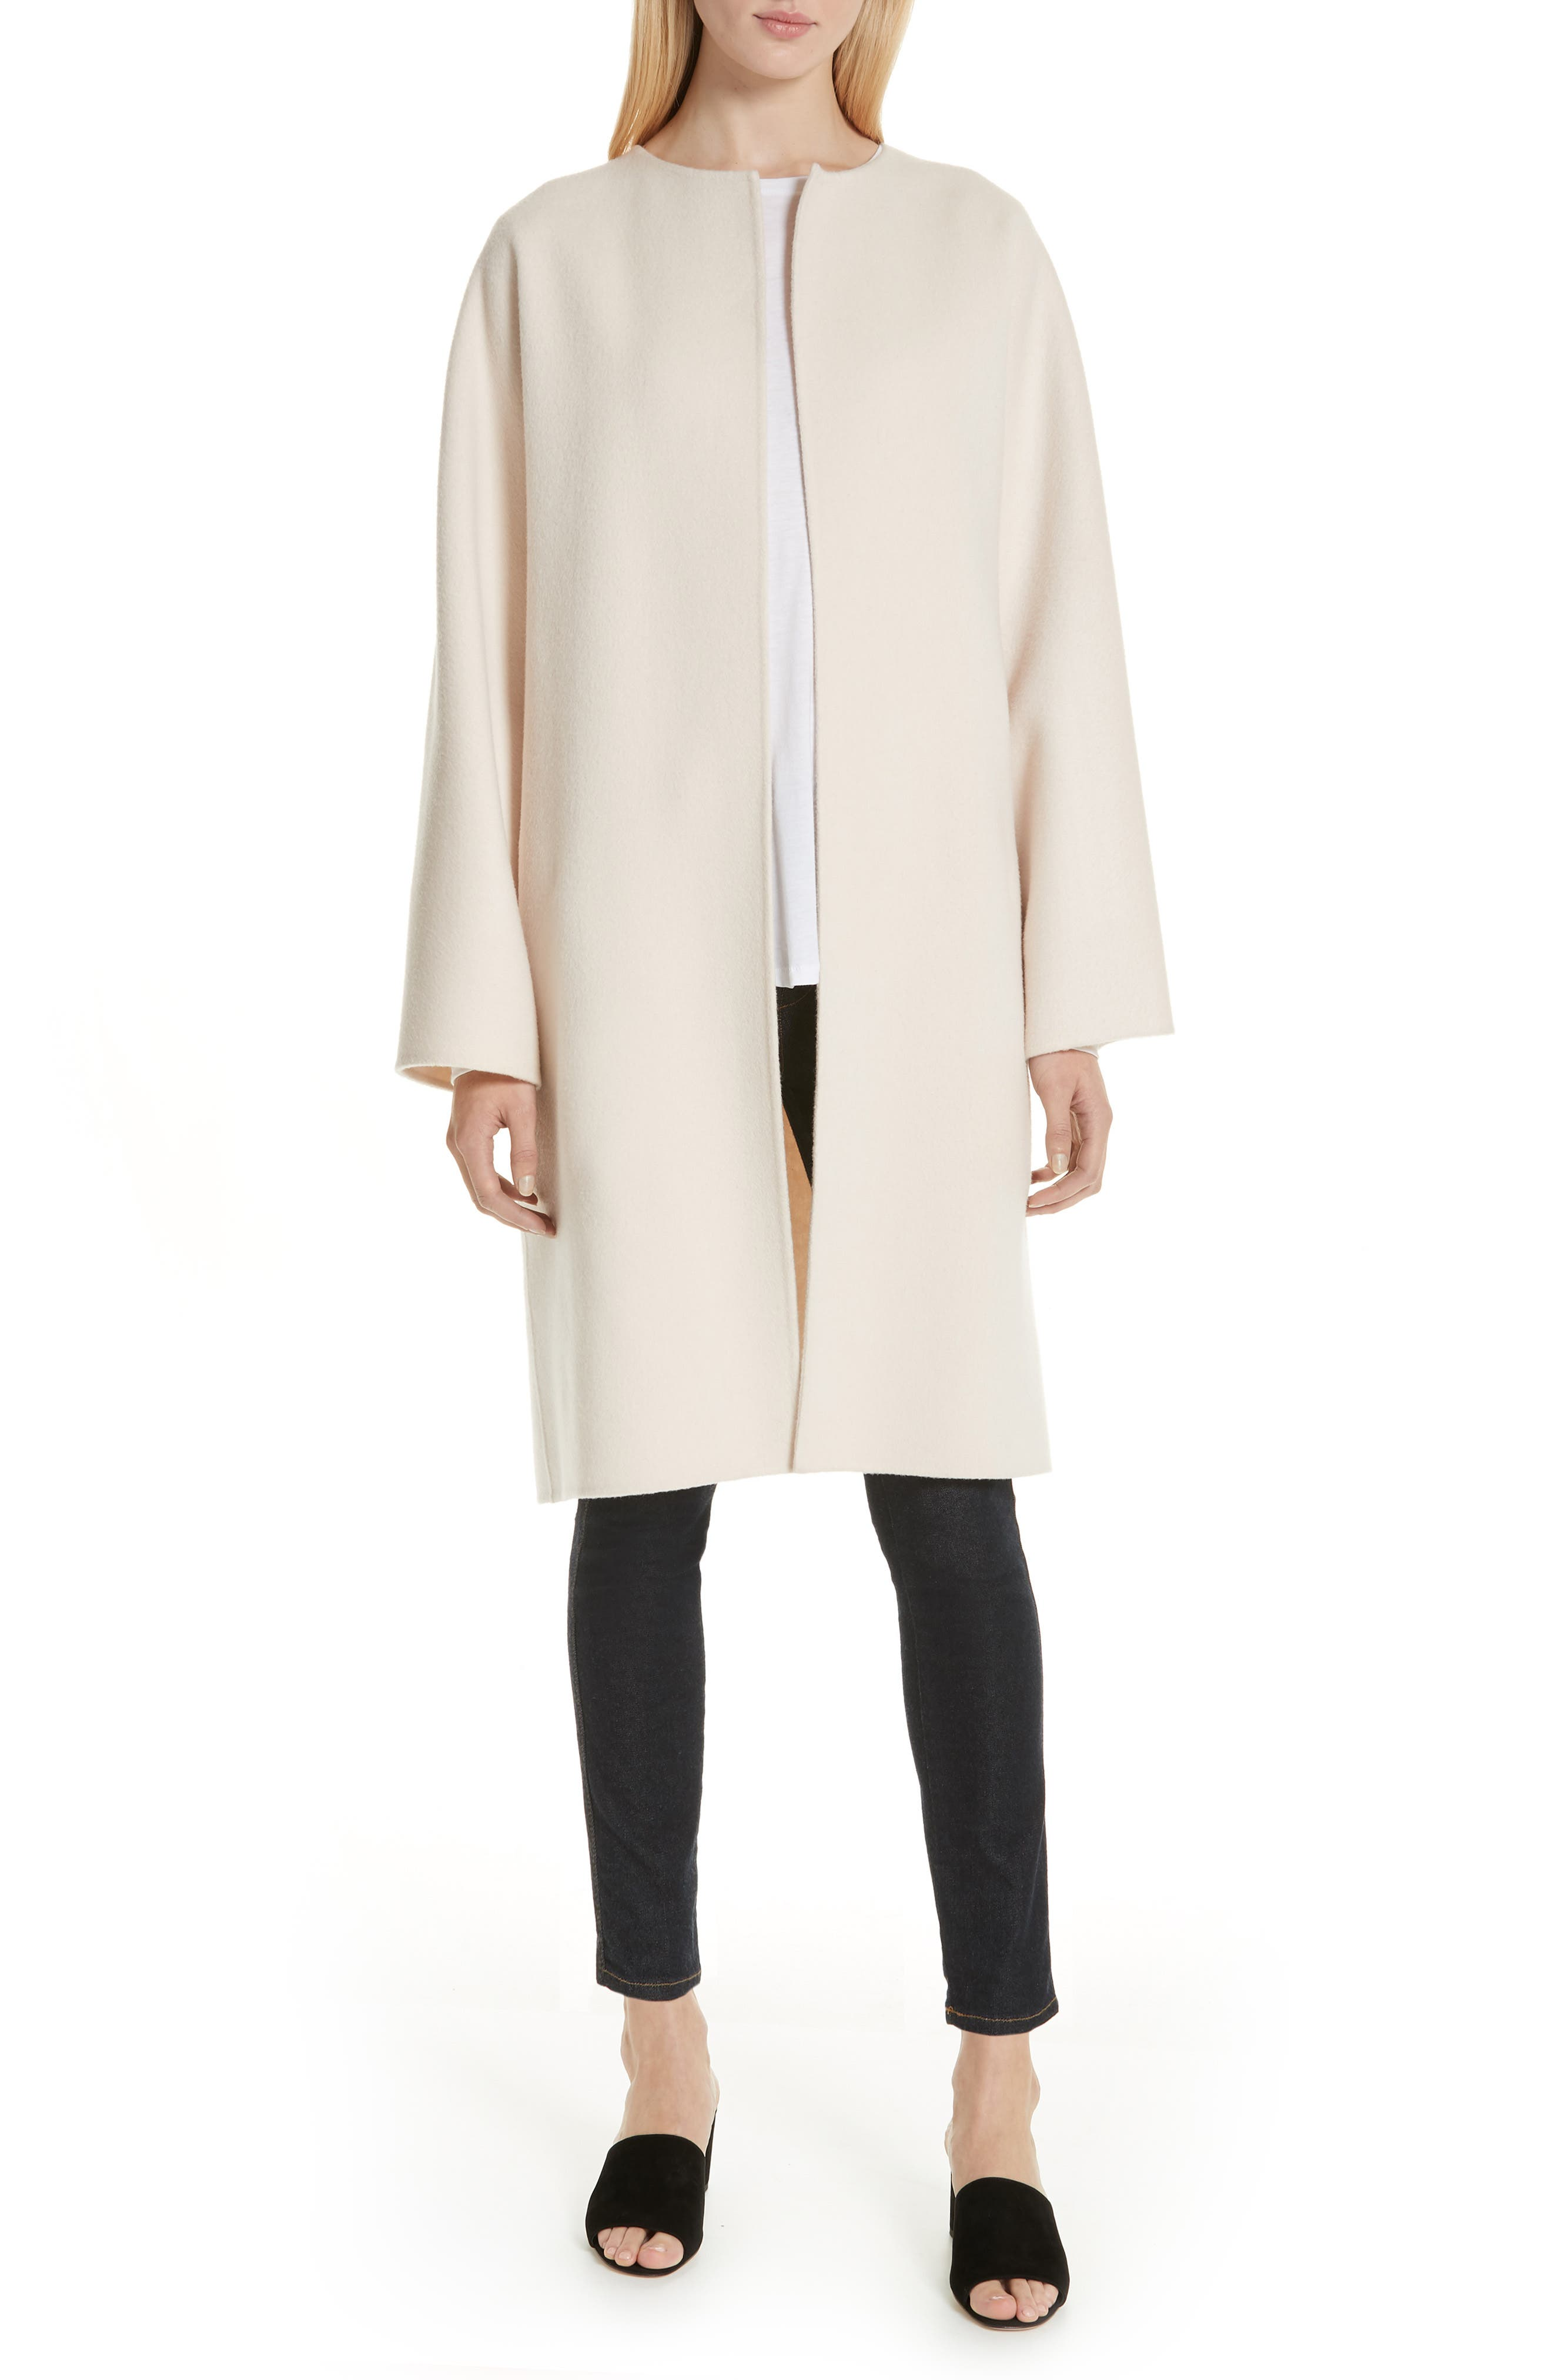 Rounded Double Face Wool & Cashmere Coat,                             Main thumbnail 1, color,                             900